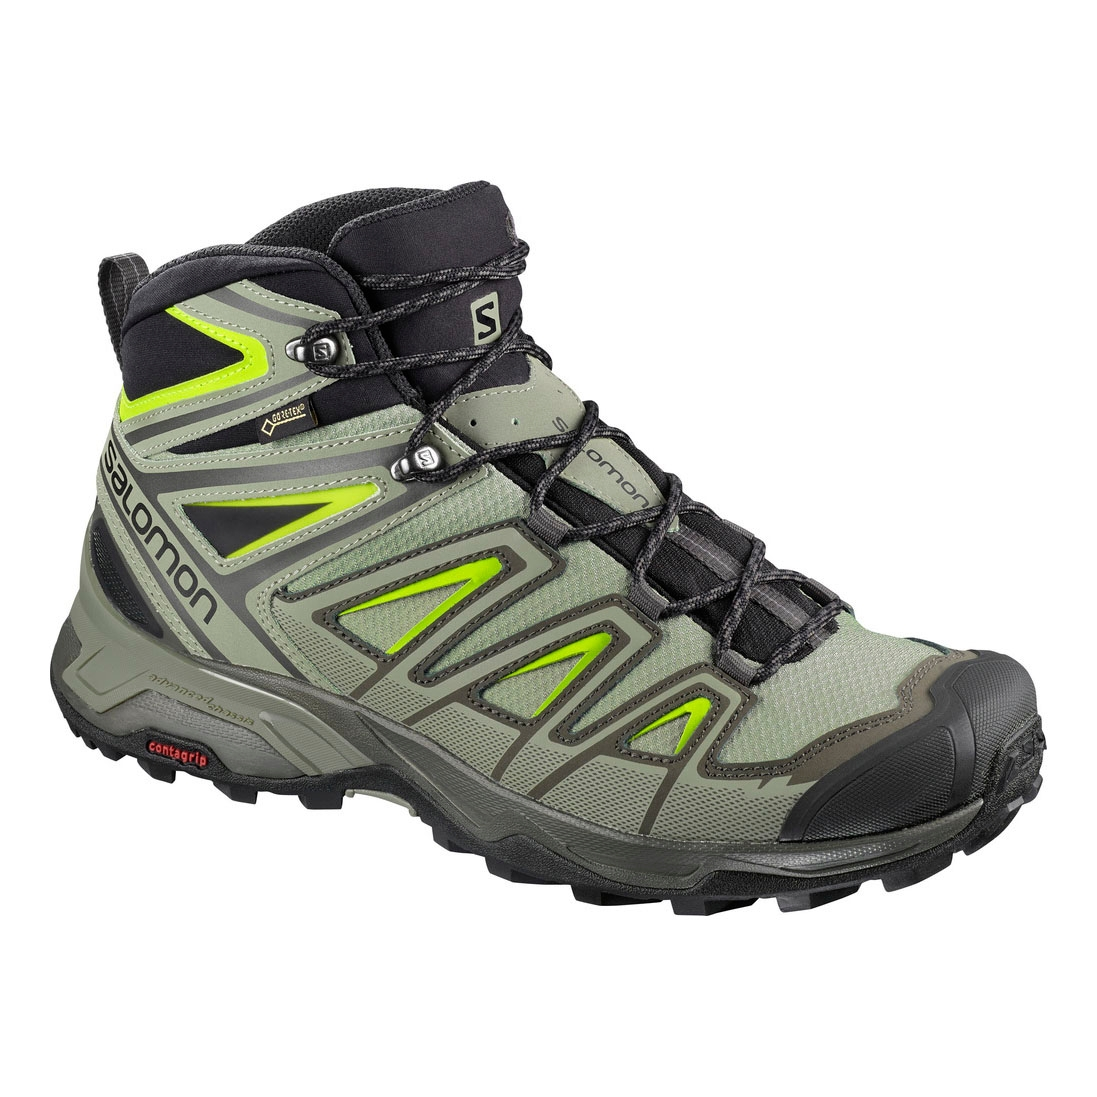 Salomon X Ultra 3 MID GTX Walking Boots (Men s) - Beluga Shadow Lime ... 6e9e0b38bc08